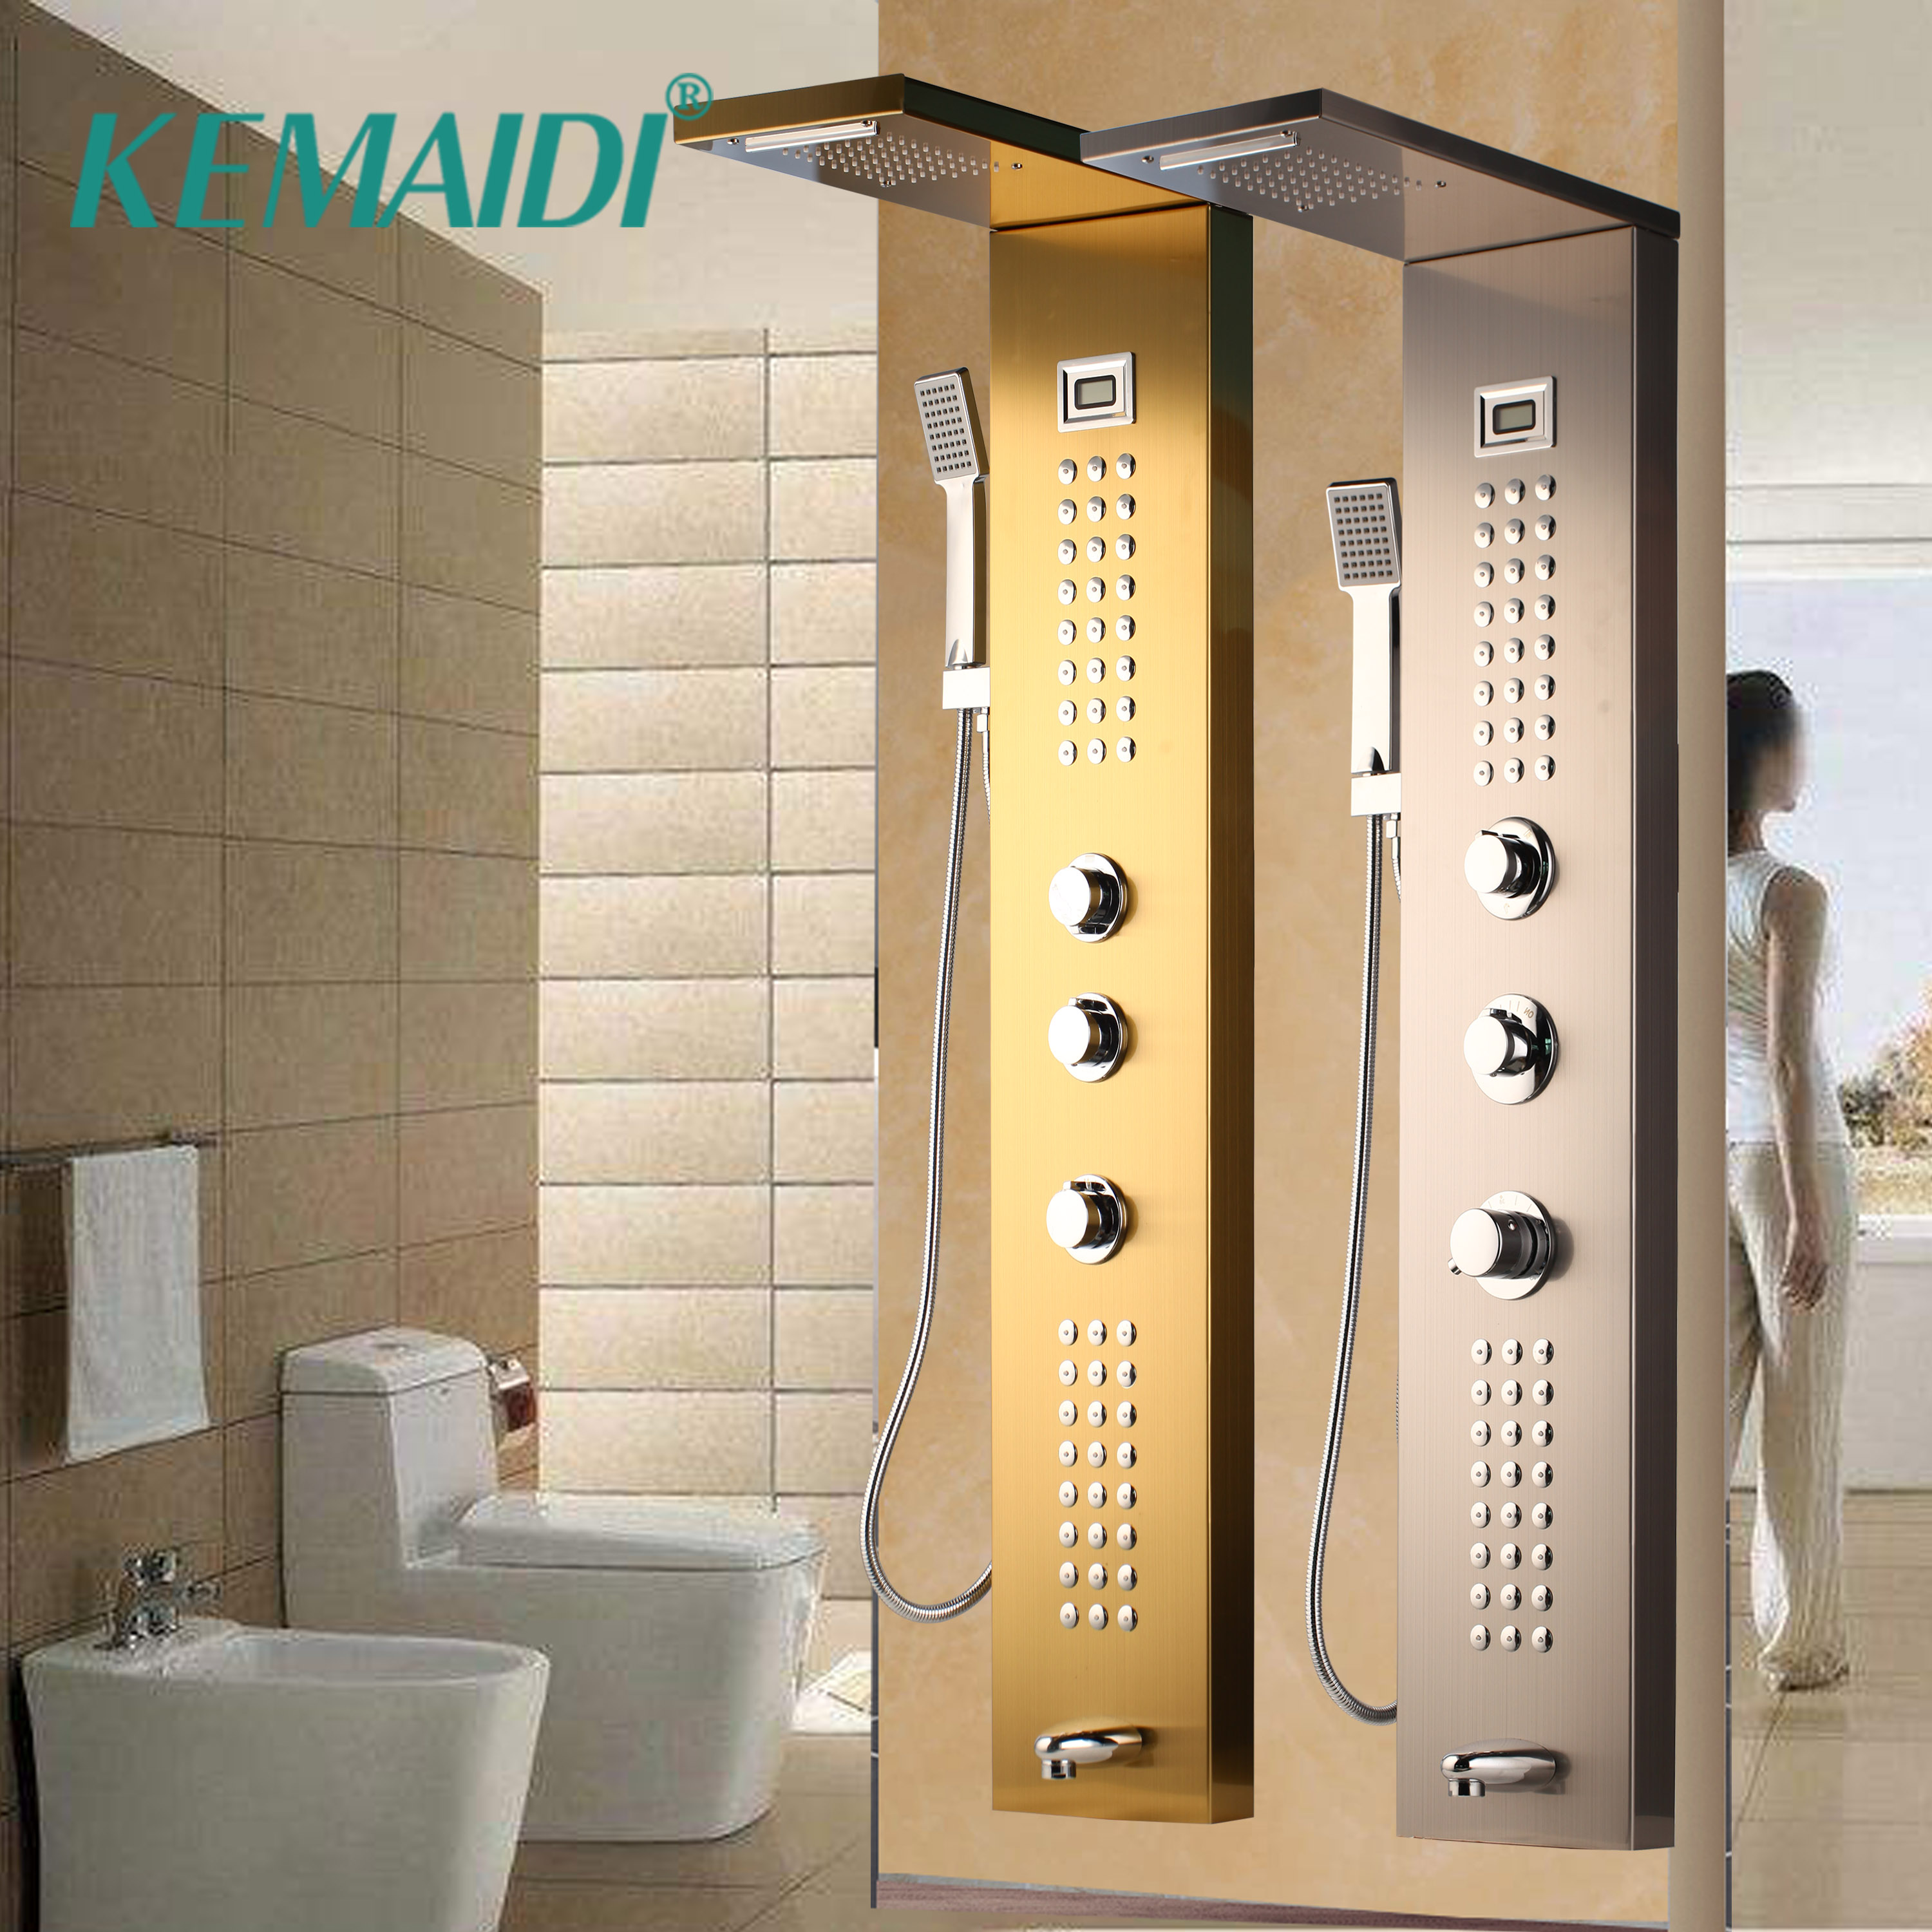 KEMAIDI Waterfall Massage Jets Rain Shower Column Thermostatic Mixer Shower Faucet Tower W/Hand Shower Tub Spout Shower PanelKEMAIDI Waterfall Massage Jets Rain Shower Column Thermostatic Mixer Shower Faucet Tower W/Hand Shower Tub Spout Shower Panel